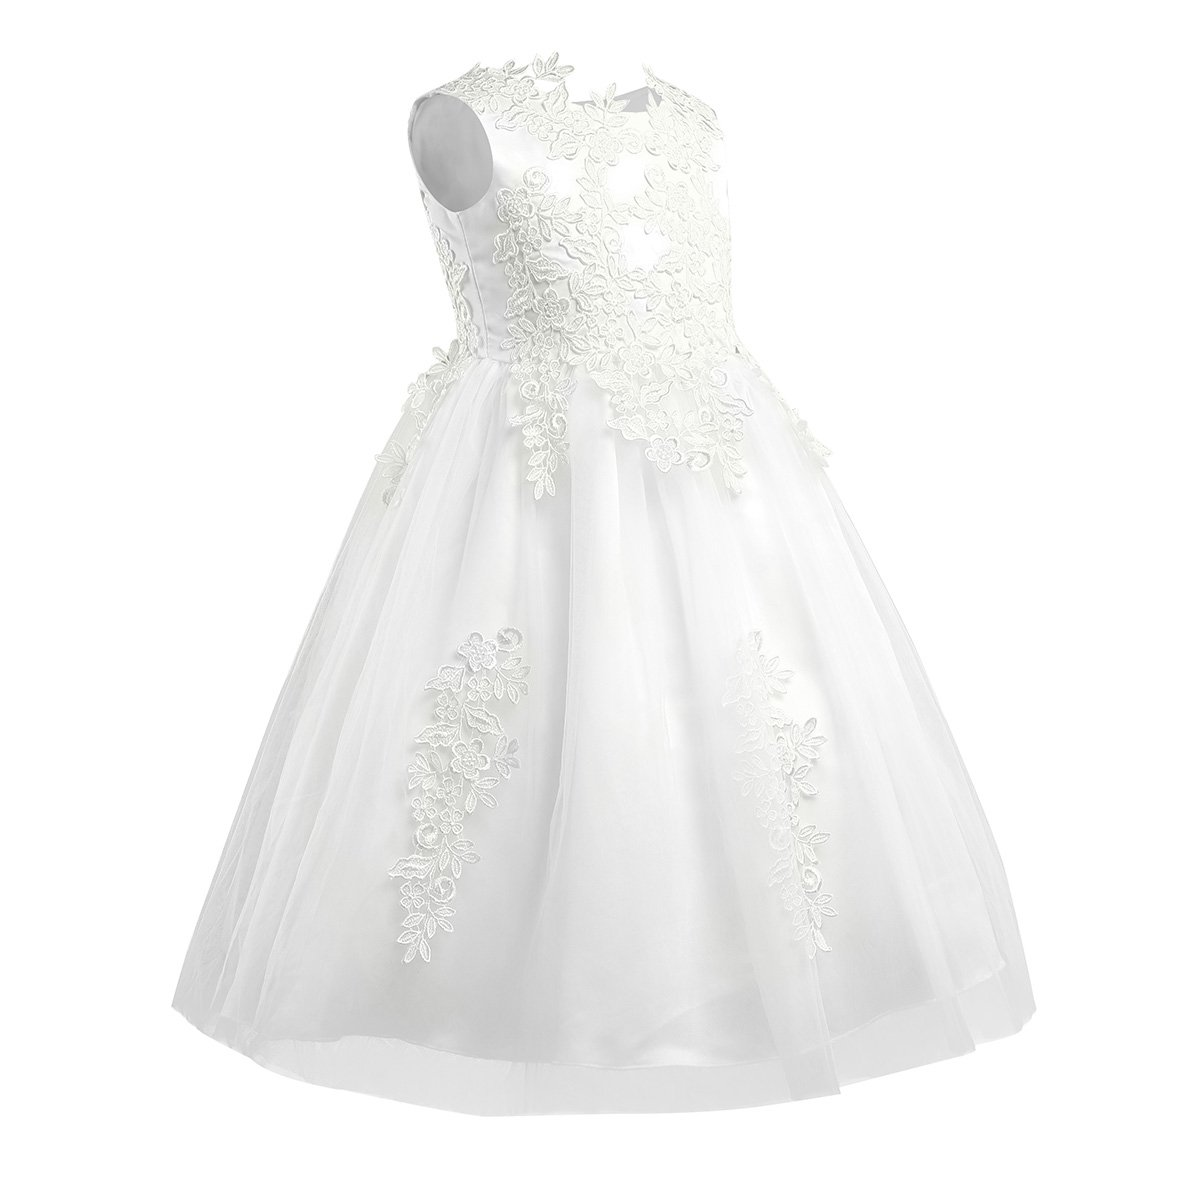 a30a53de7c2 iEFiEL Kids Girls  Princess Floral Lace Embellished Flower Dresses Tulle  Wedding Pageant Bridesmaid Christening Gowns Ivory  Amazon.co.uk  Clothing